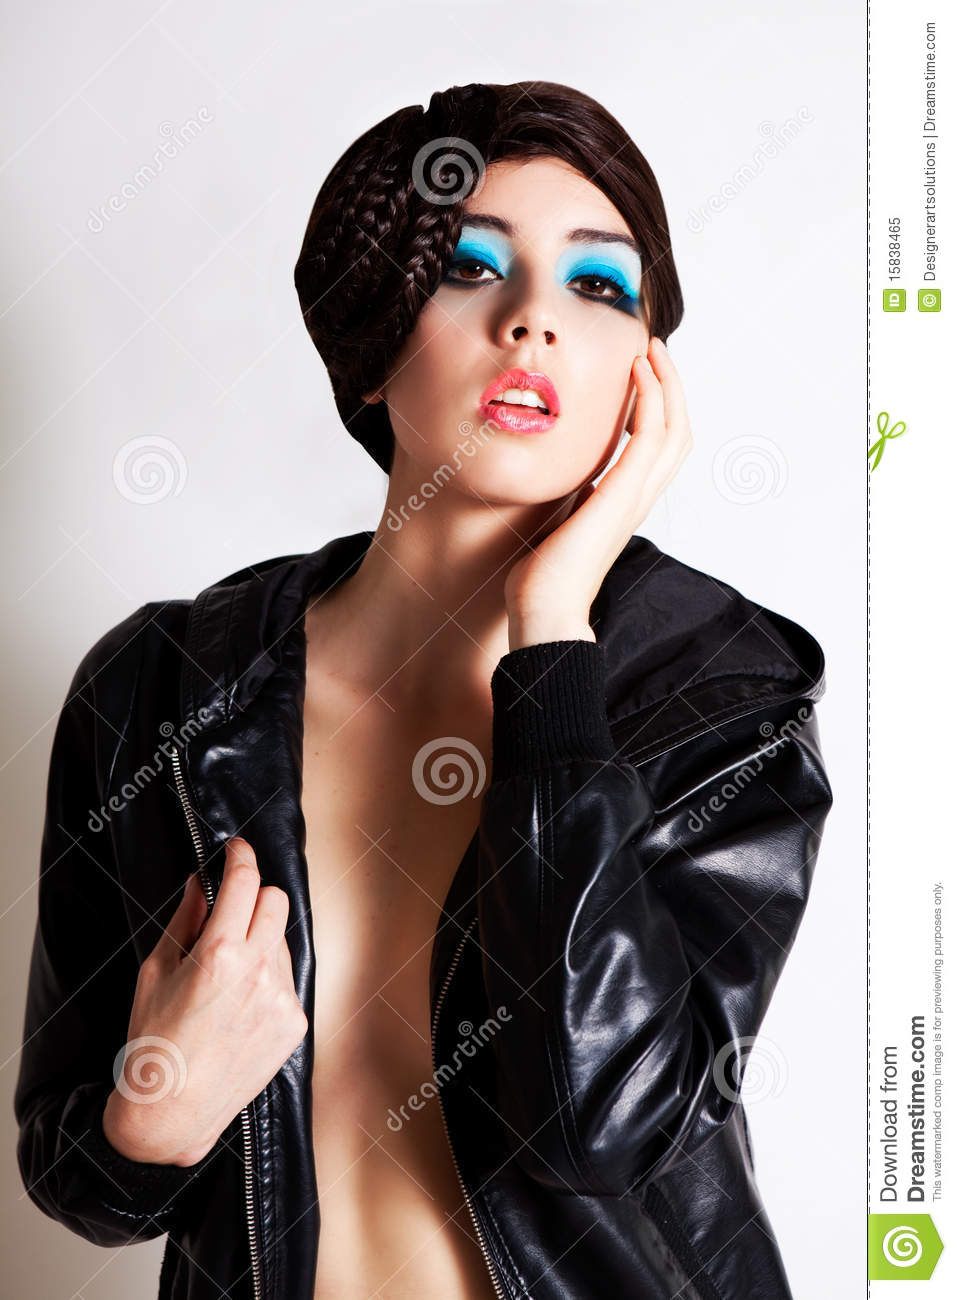 Sexy Young Woman In A Jacket With No Shirt Royalty Free Stock